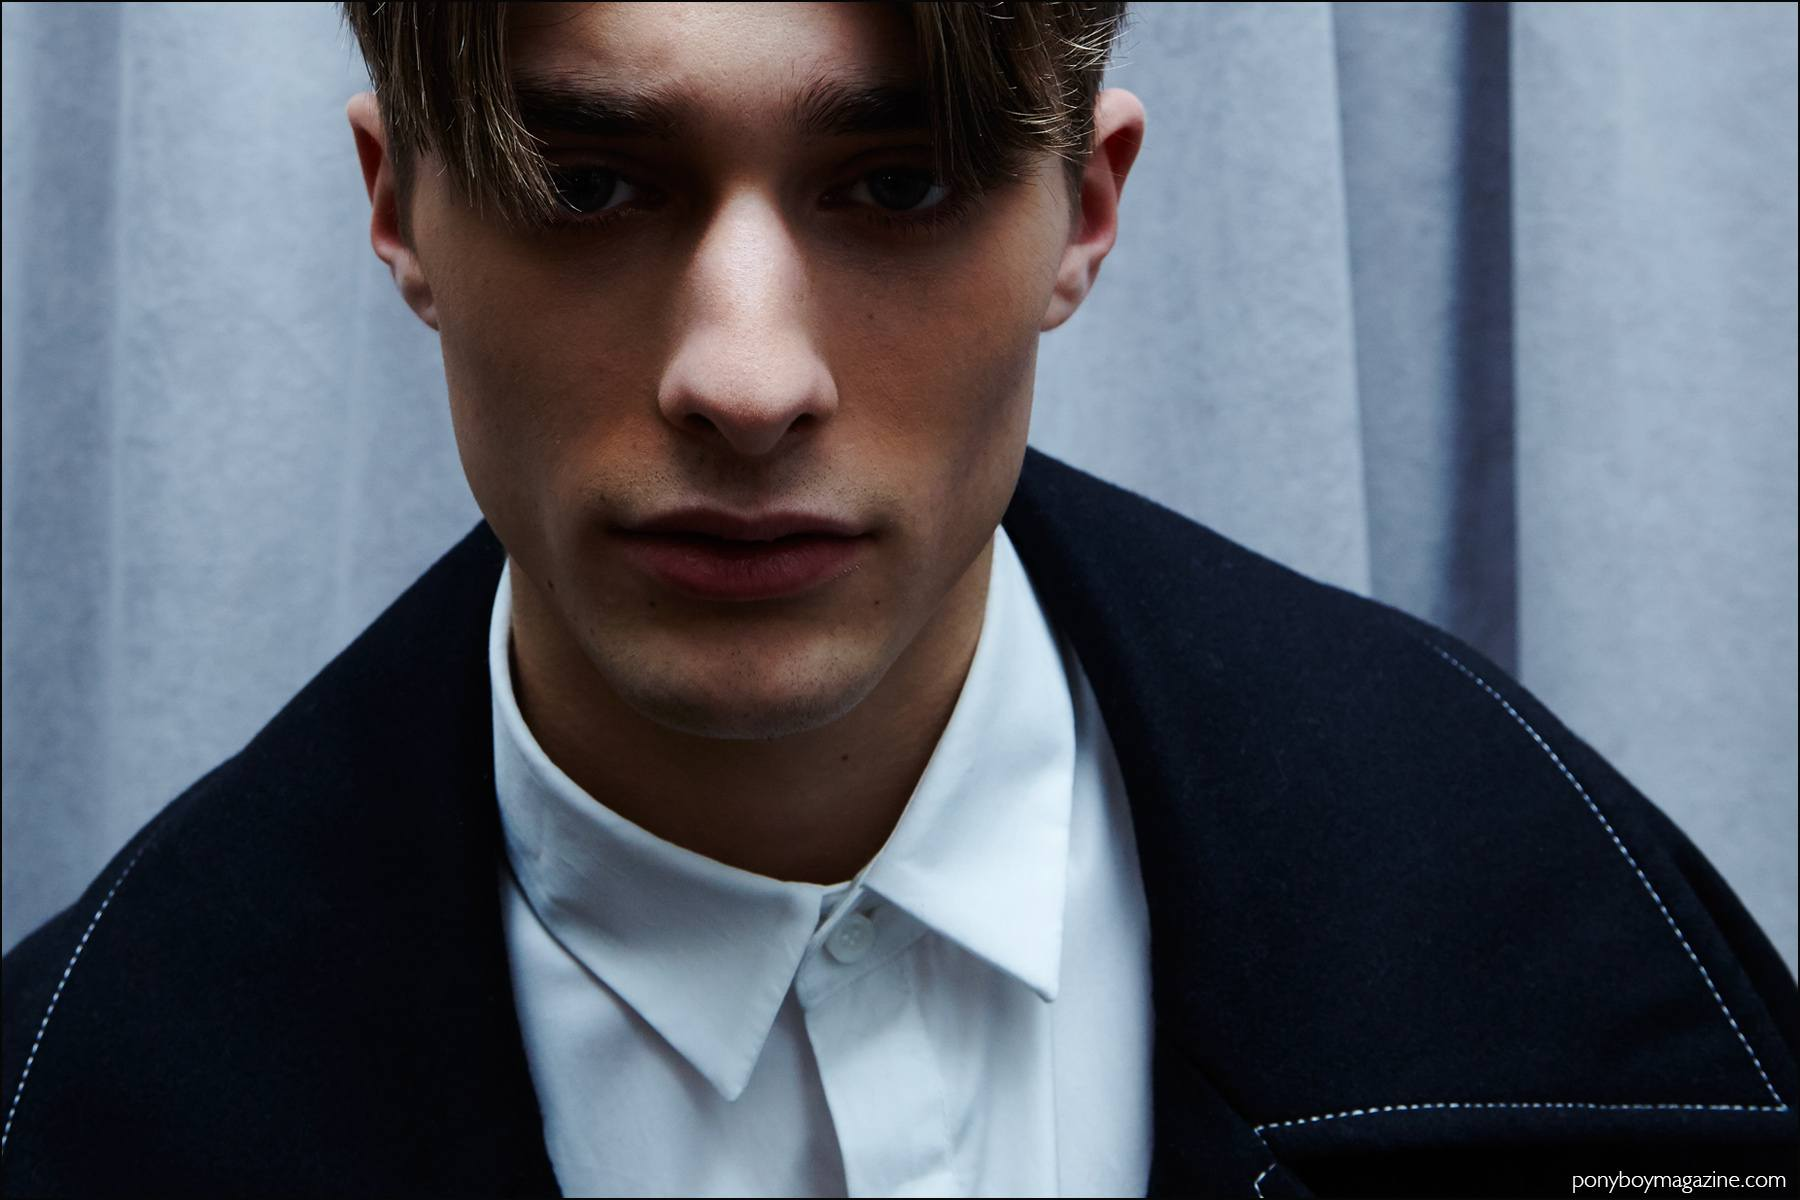 Model Maxence Danet-Fauvel photographed backstage in Kenneth Ning F/W16 menswear. Photography by Alexander Thompson for Ponyboy magazine NY.